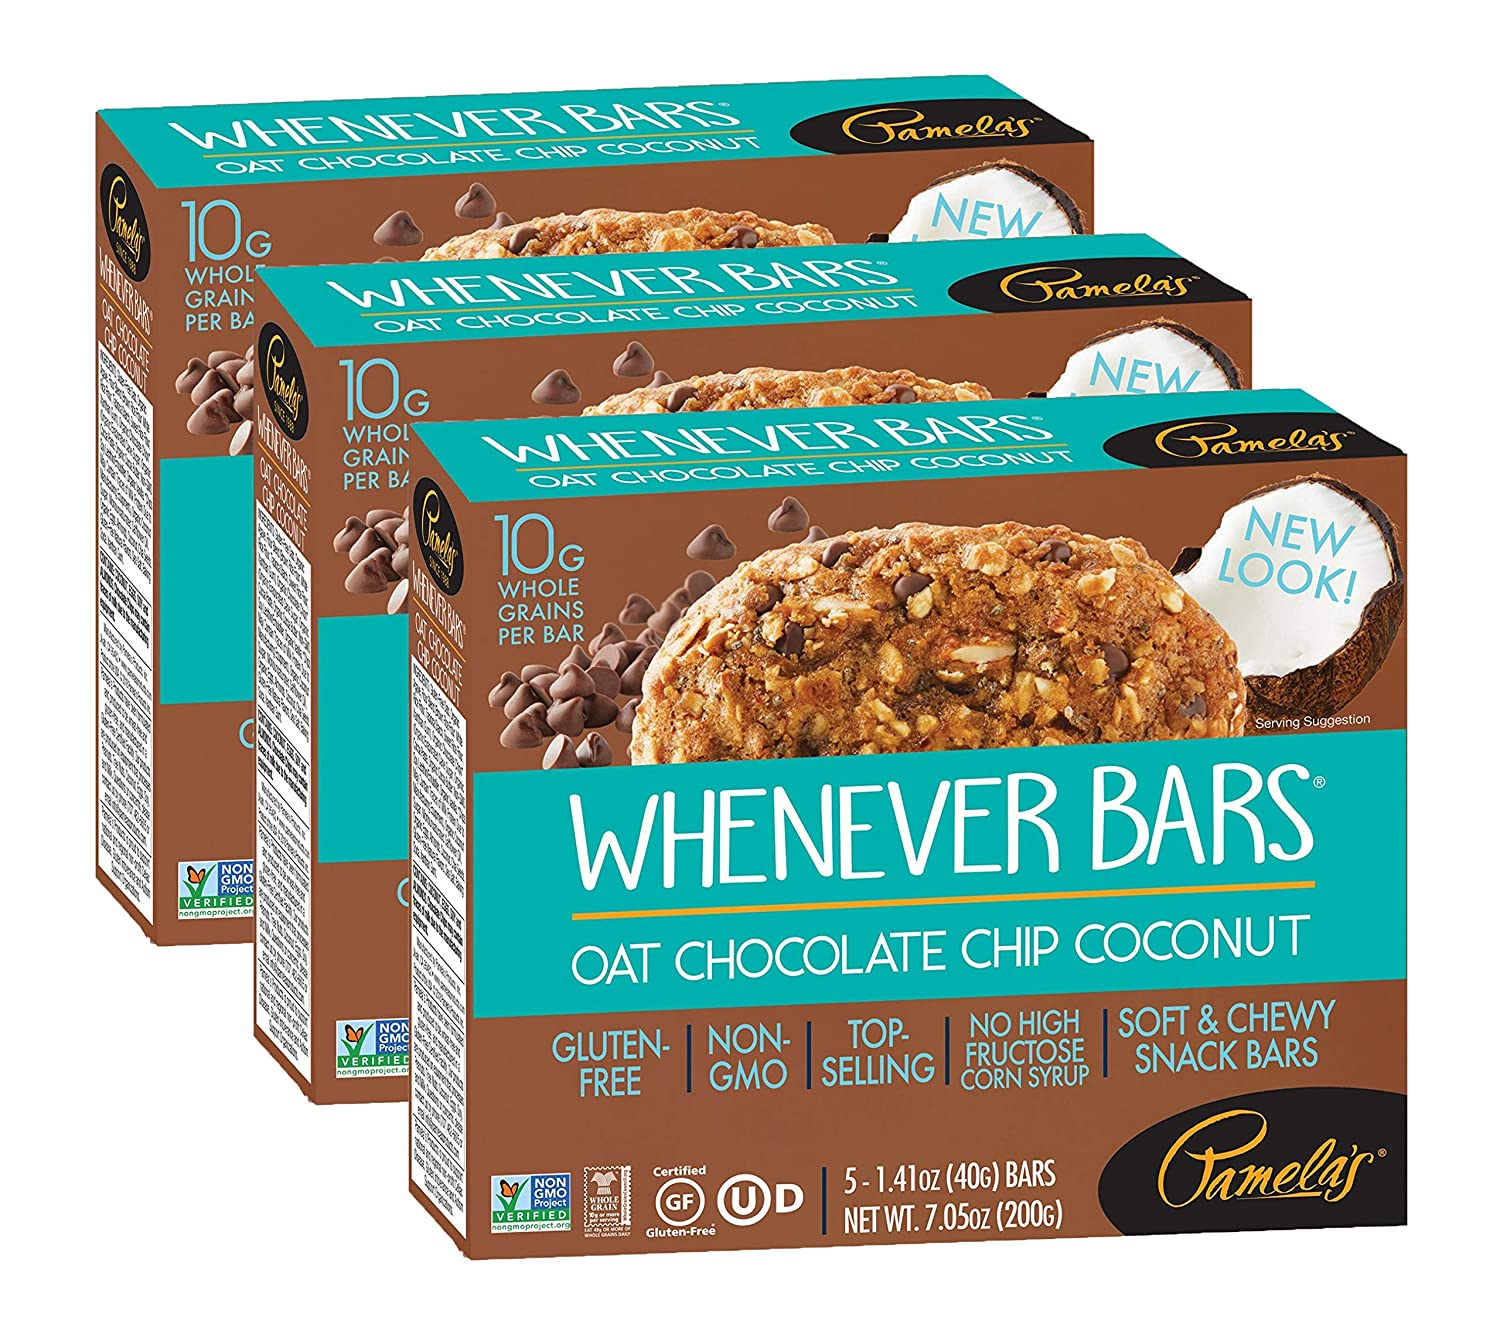 Pamela's Products Gluten Free Whenever Cocon Chip Fort NEW Worth Mall Oat Bars Choc